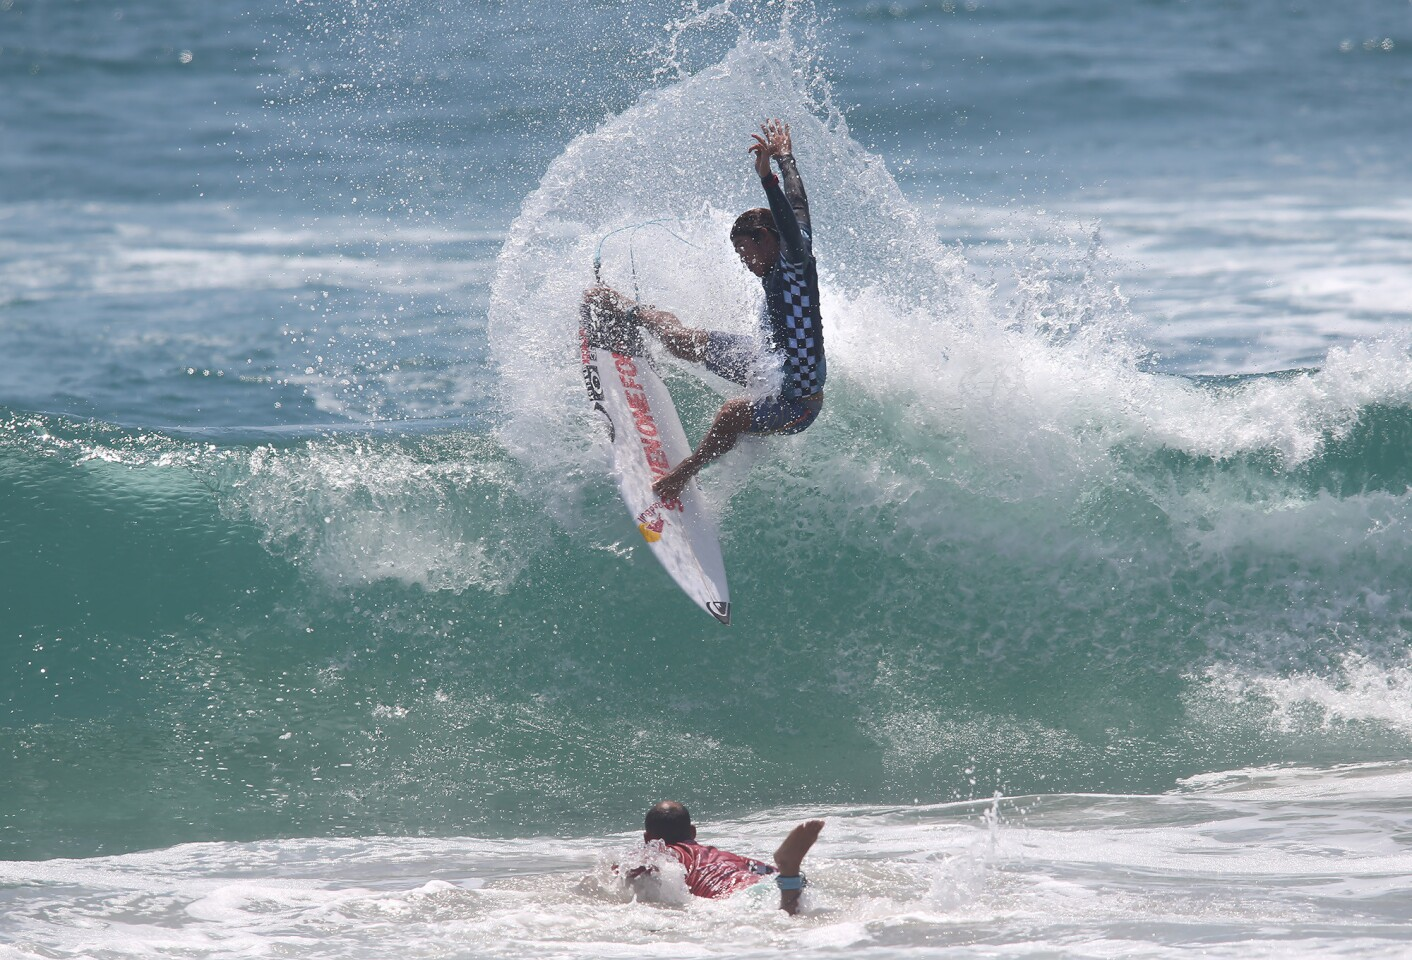 Huntington Beach's Kanoa Igarashi goes hard off the top as he surfs his way to the final against Jadson Andre during the Men's US Open semi-final on Sunday.